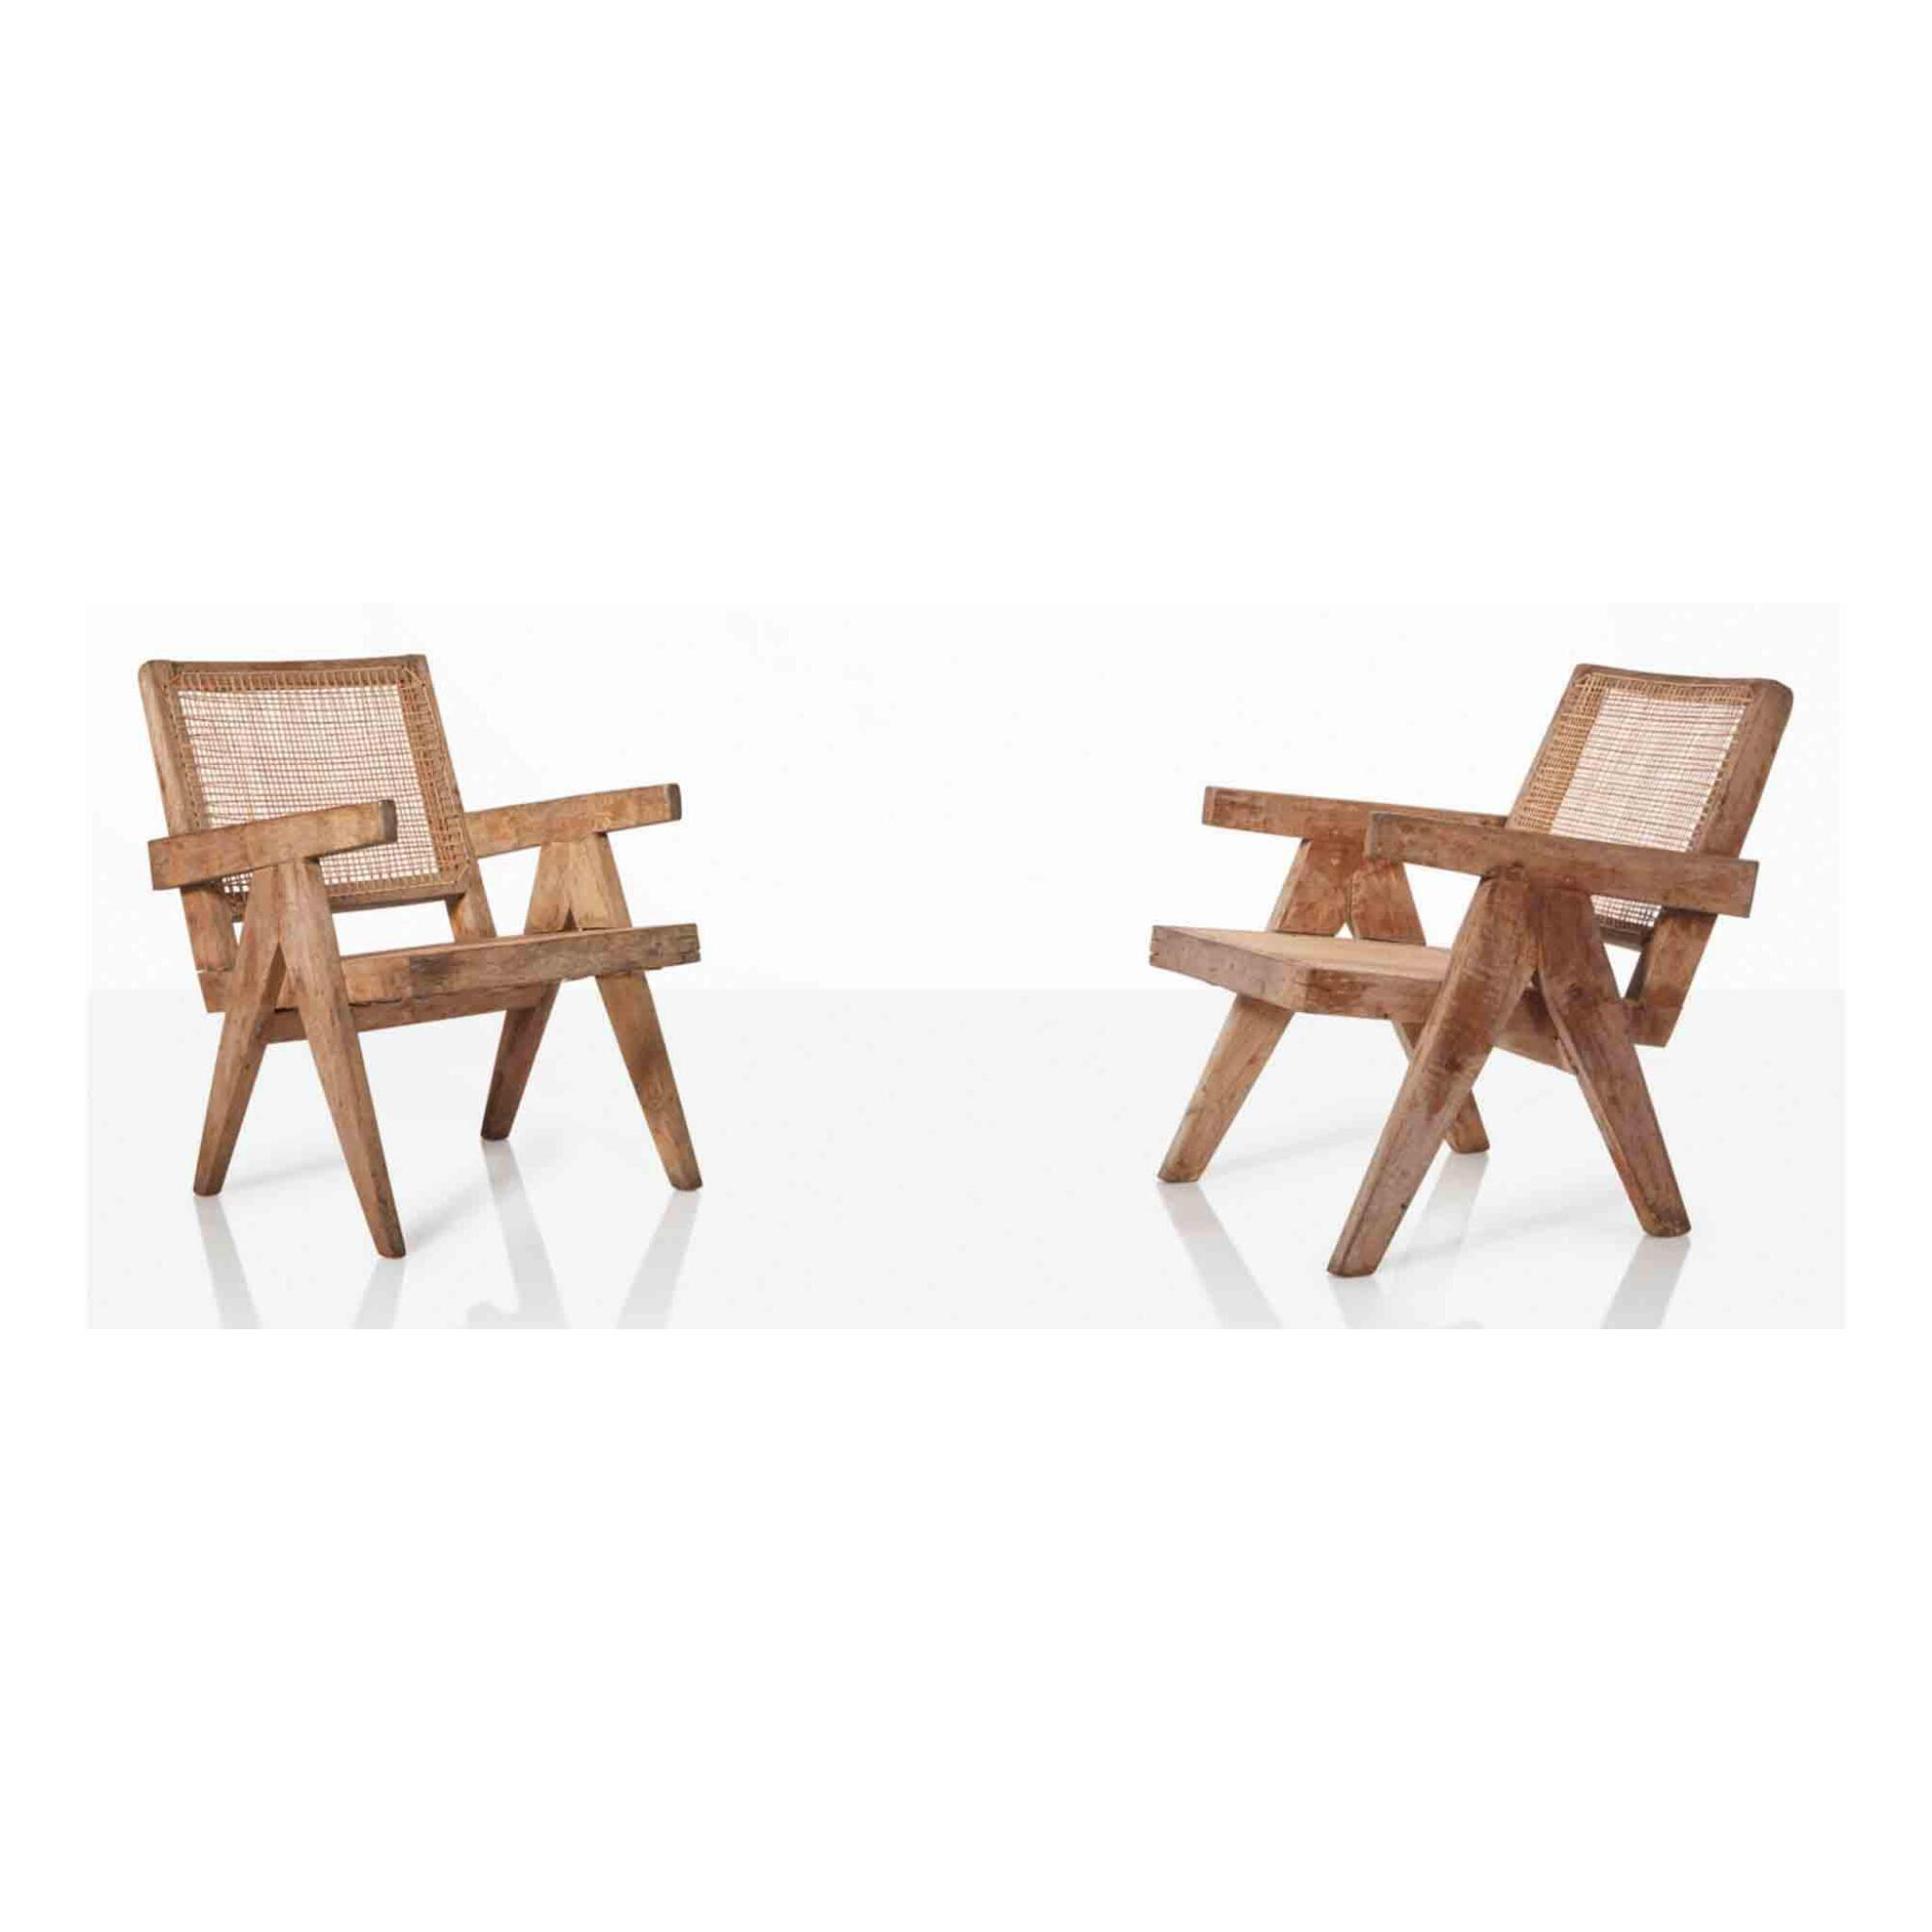 View full screen - View 1 of Lot 85. Pair of Easy Chairs, Model No. PJ-SI-29-A.